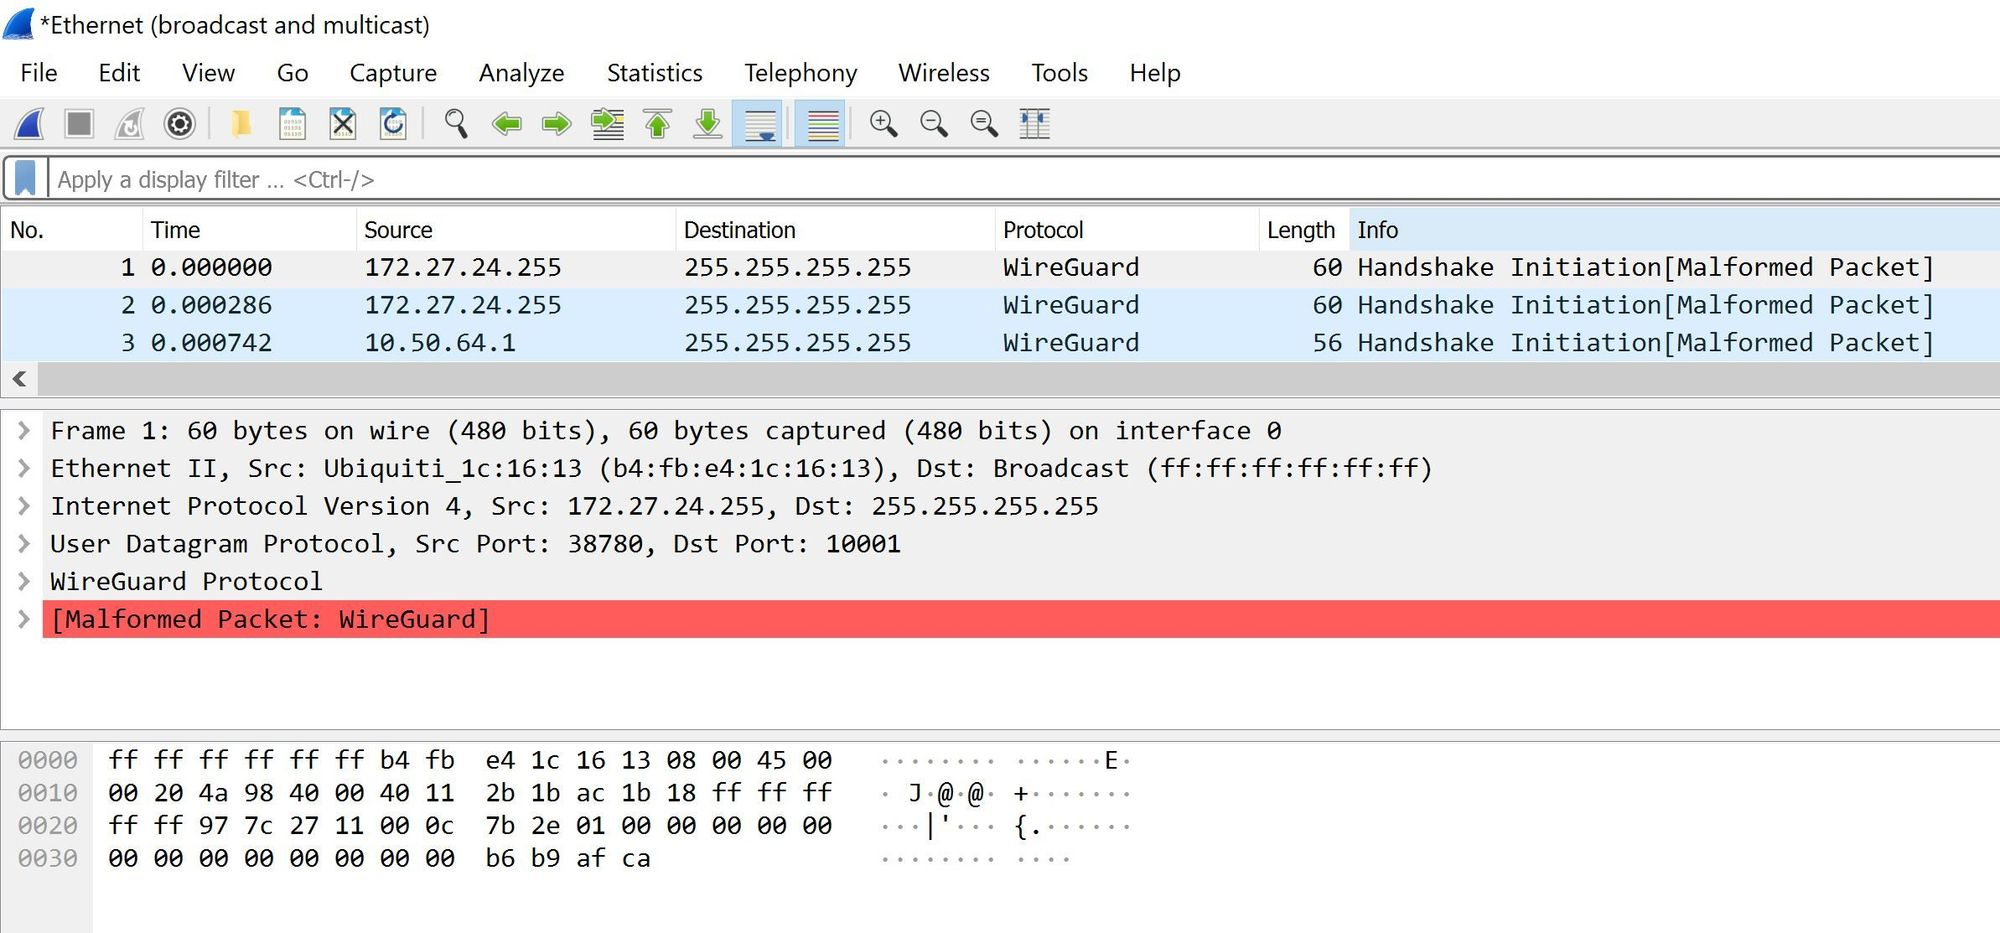 Running a broadcast, multicast filter wireshark I see packets from